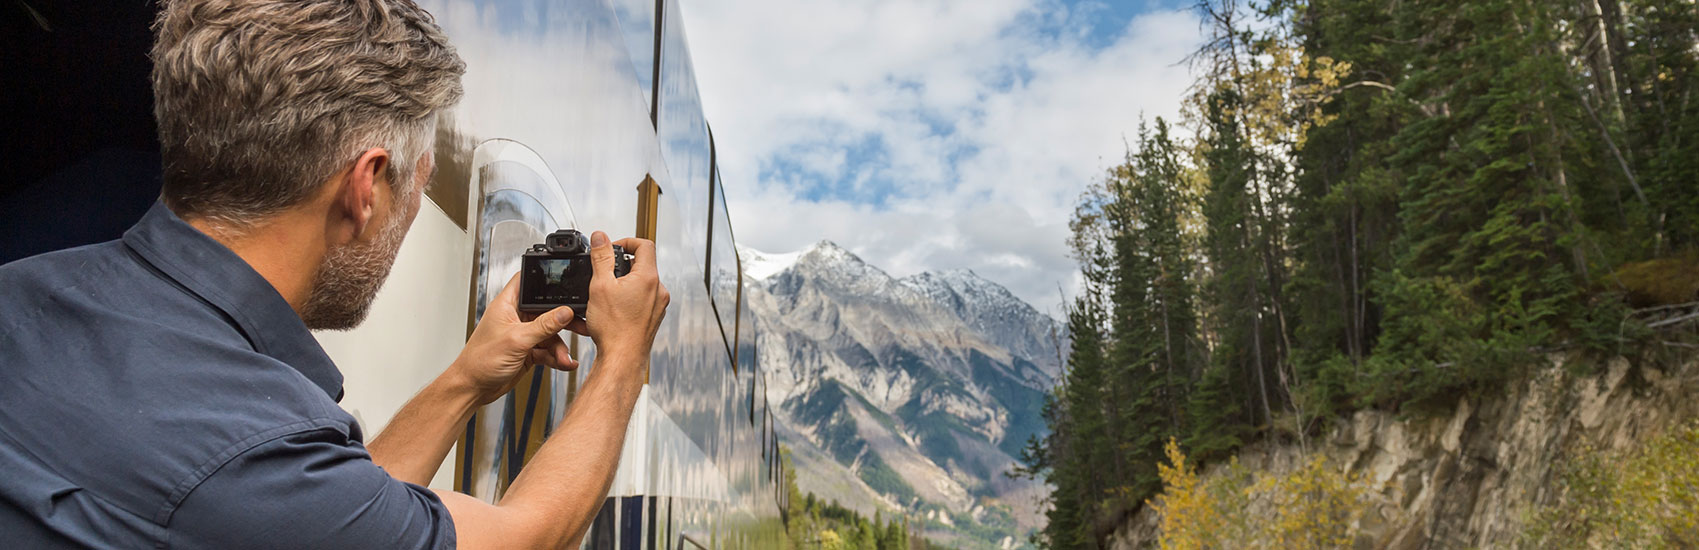 Mountain Bound in 2021 with Rocky Mountaineer